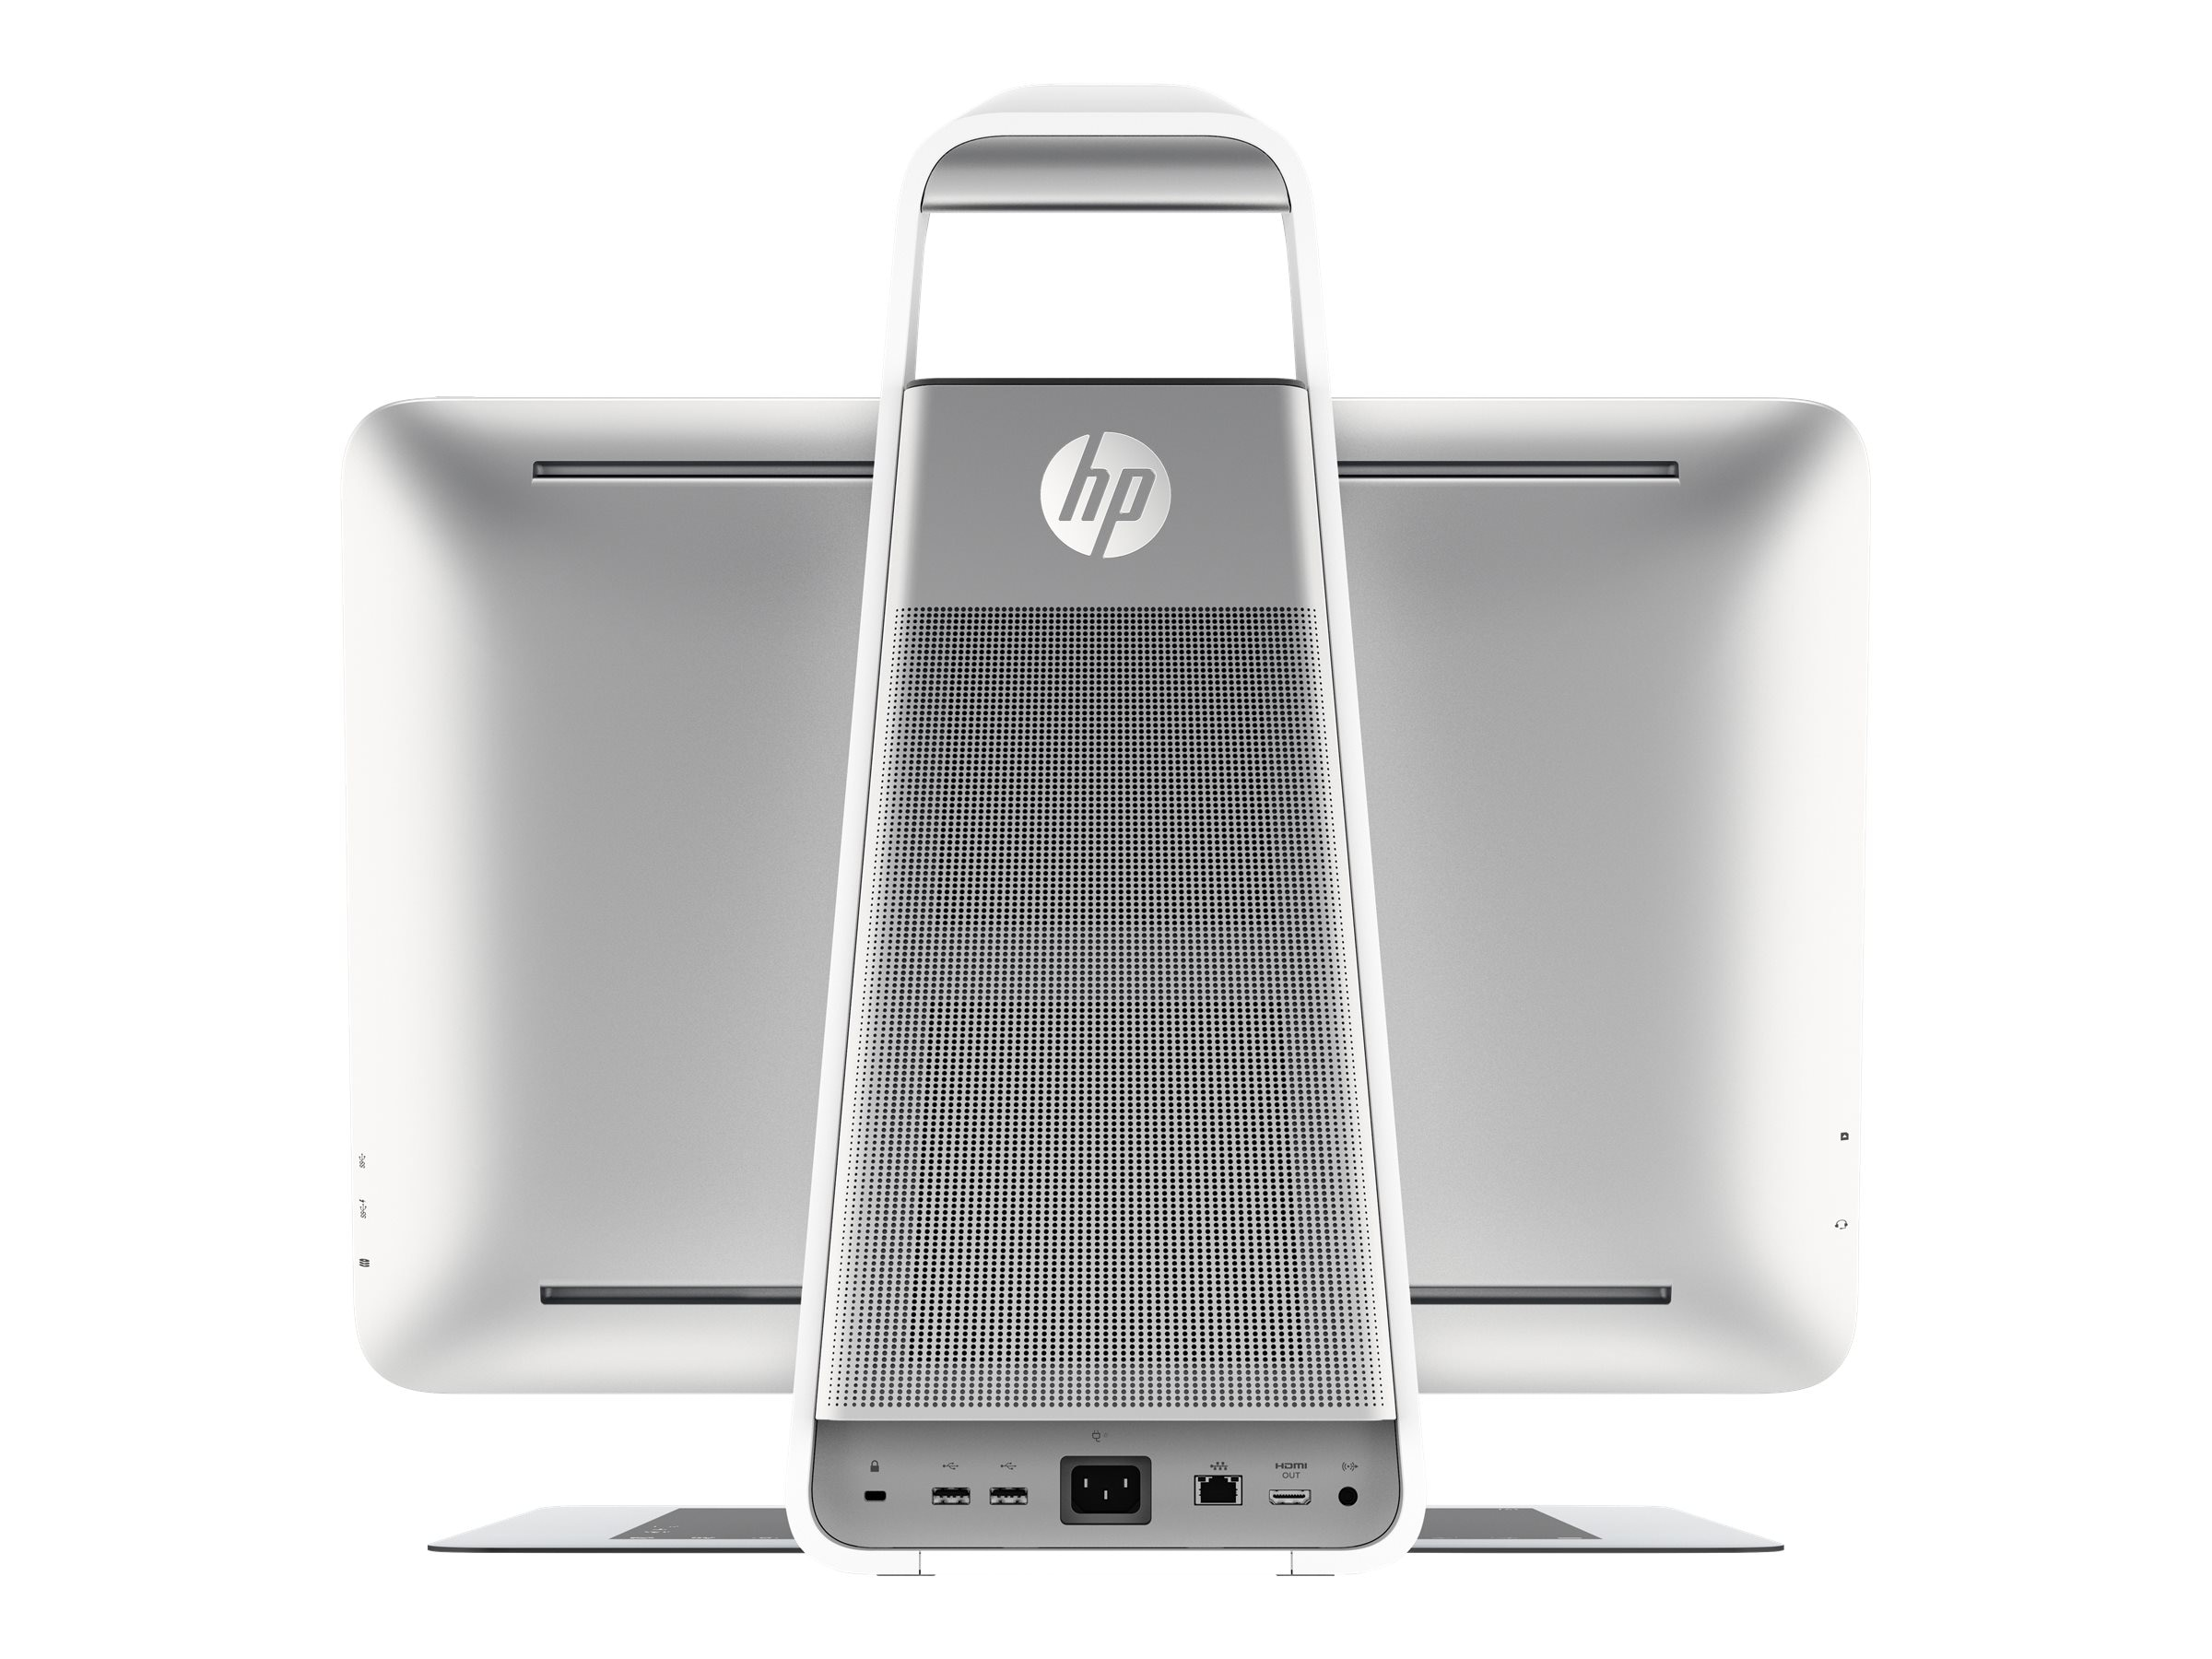 HP Sprout Pro AIO Core i7-6700 3.4GHz 8GB 1TB GT945A GbE 23 FHD MT W10P64, H0GM0AT#ABA